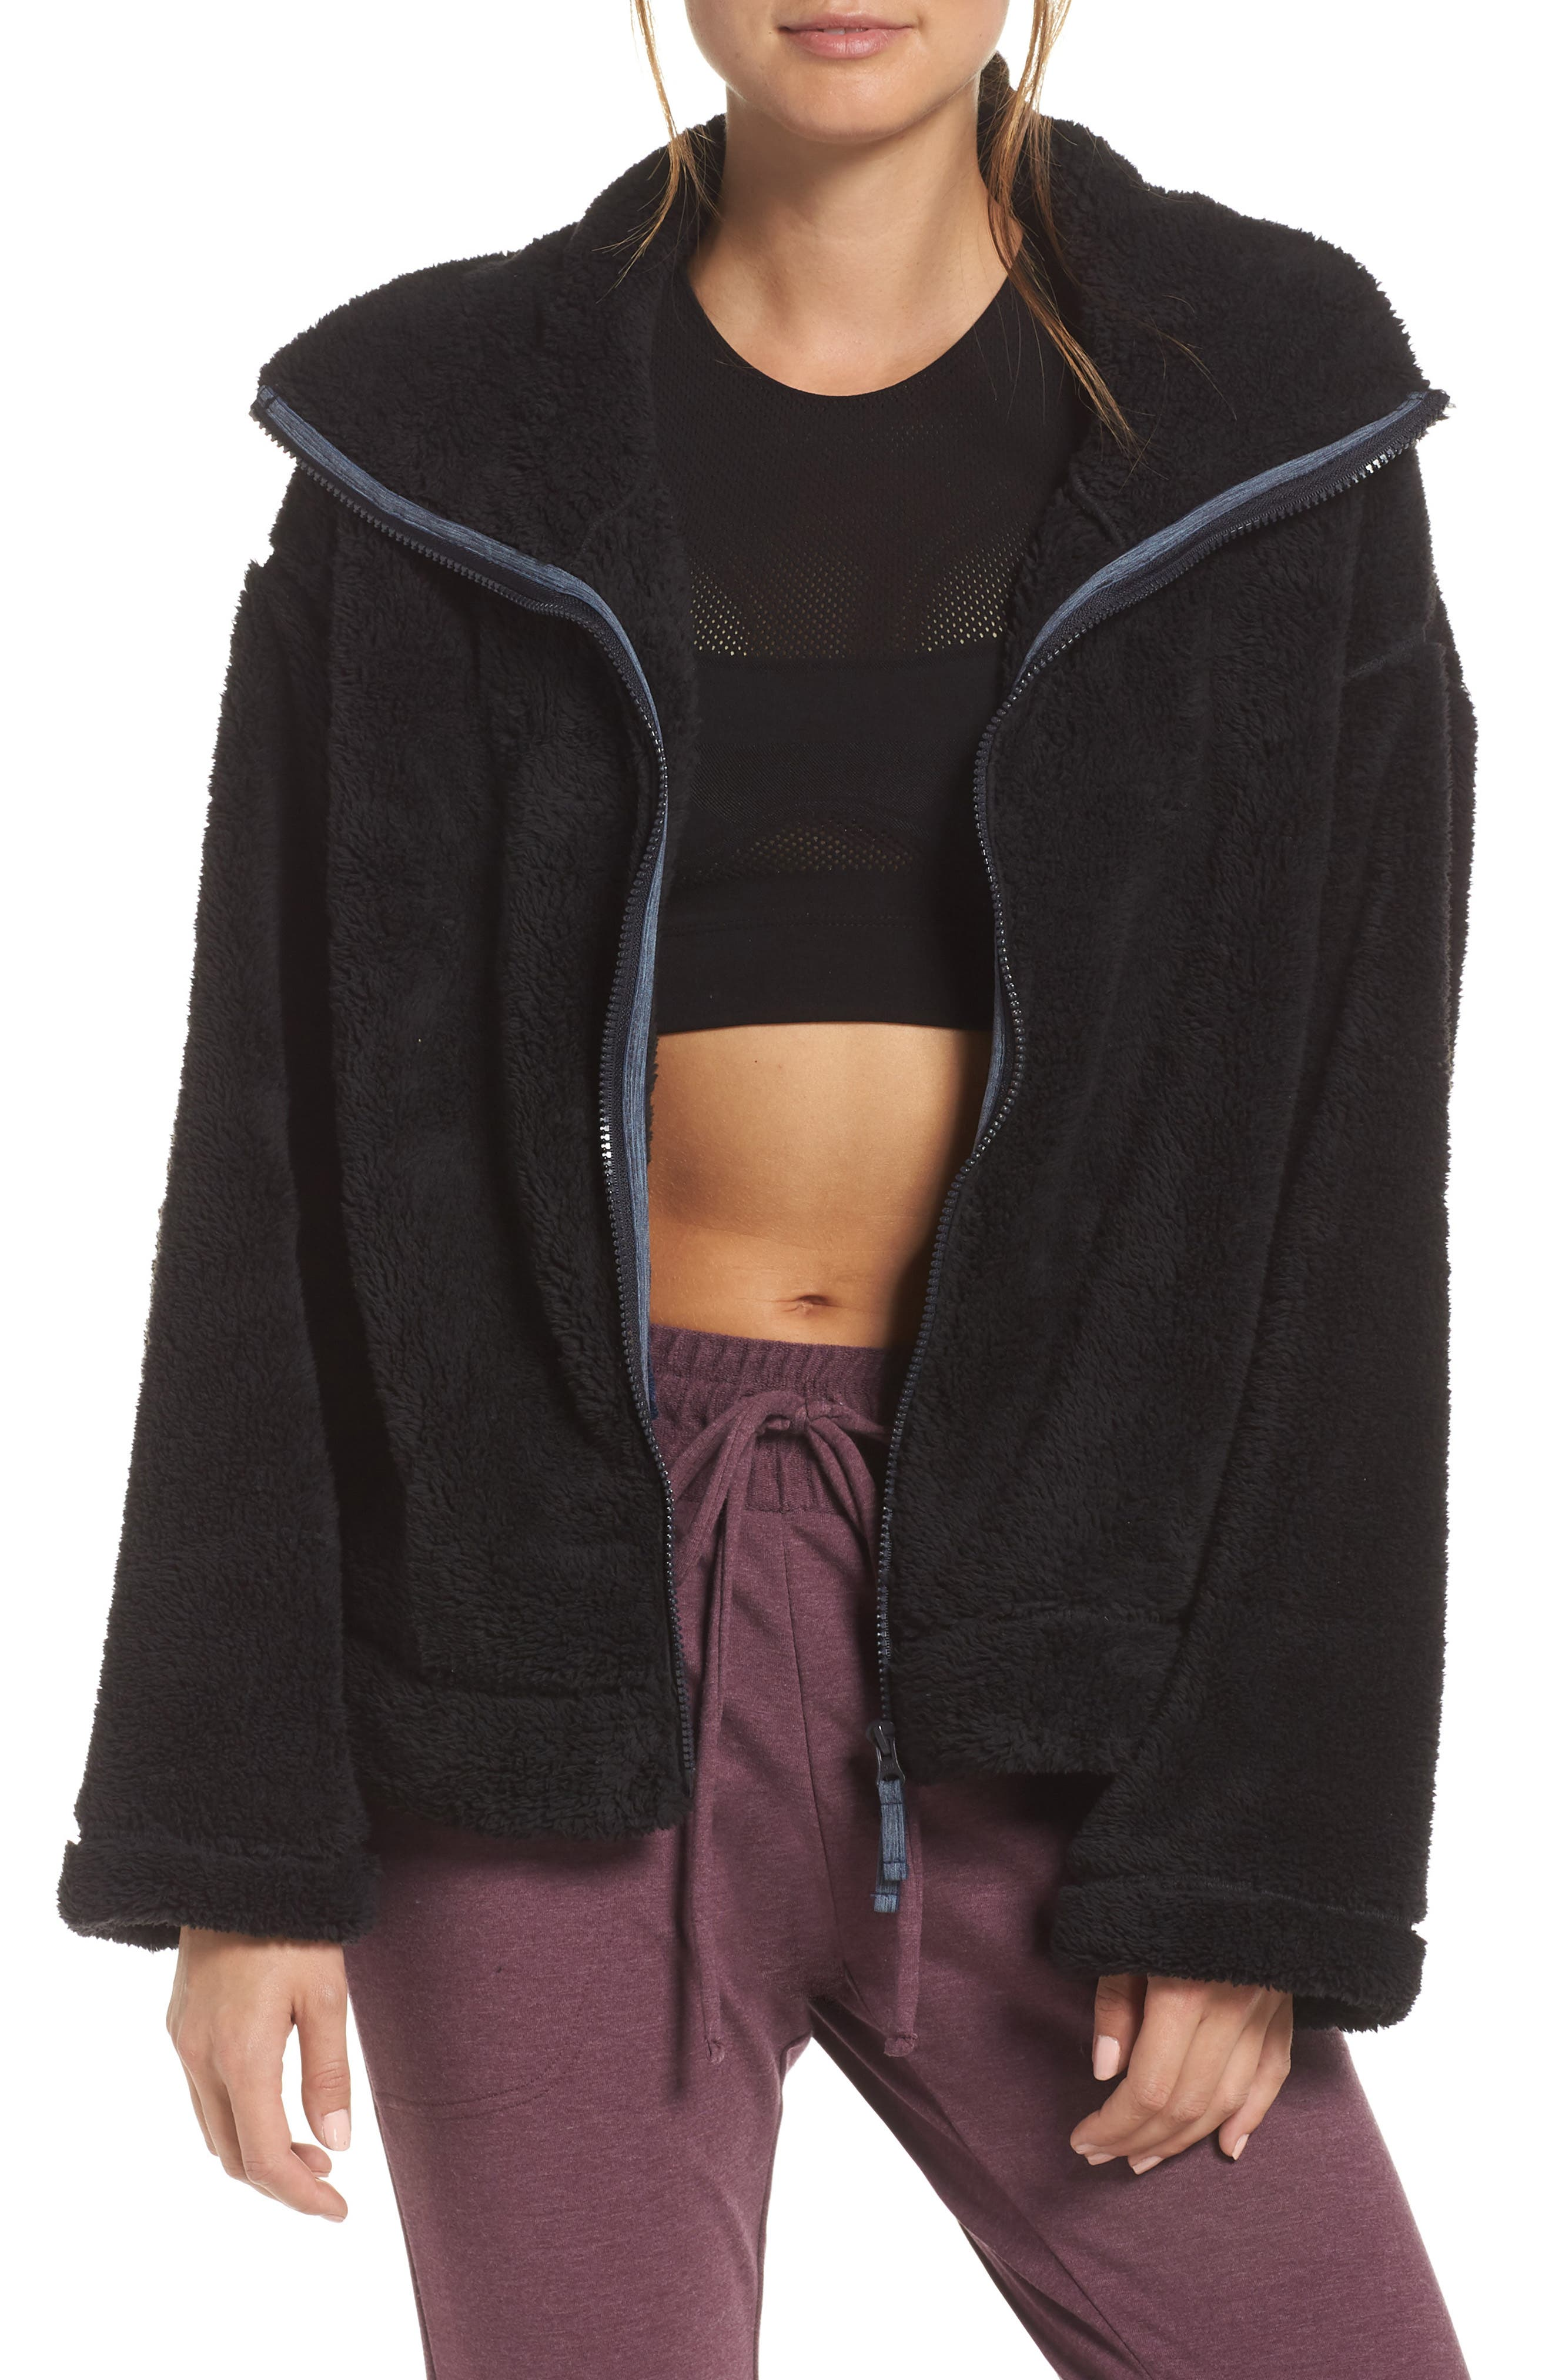 Dazed Fleece Jacket,                             Main thumbnail 1, color,                             BLACK